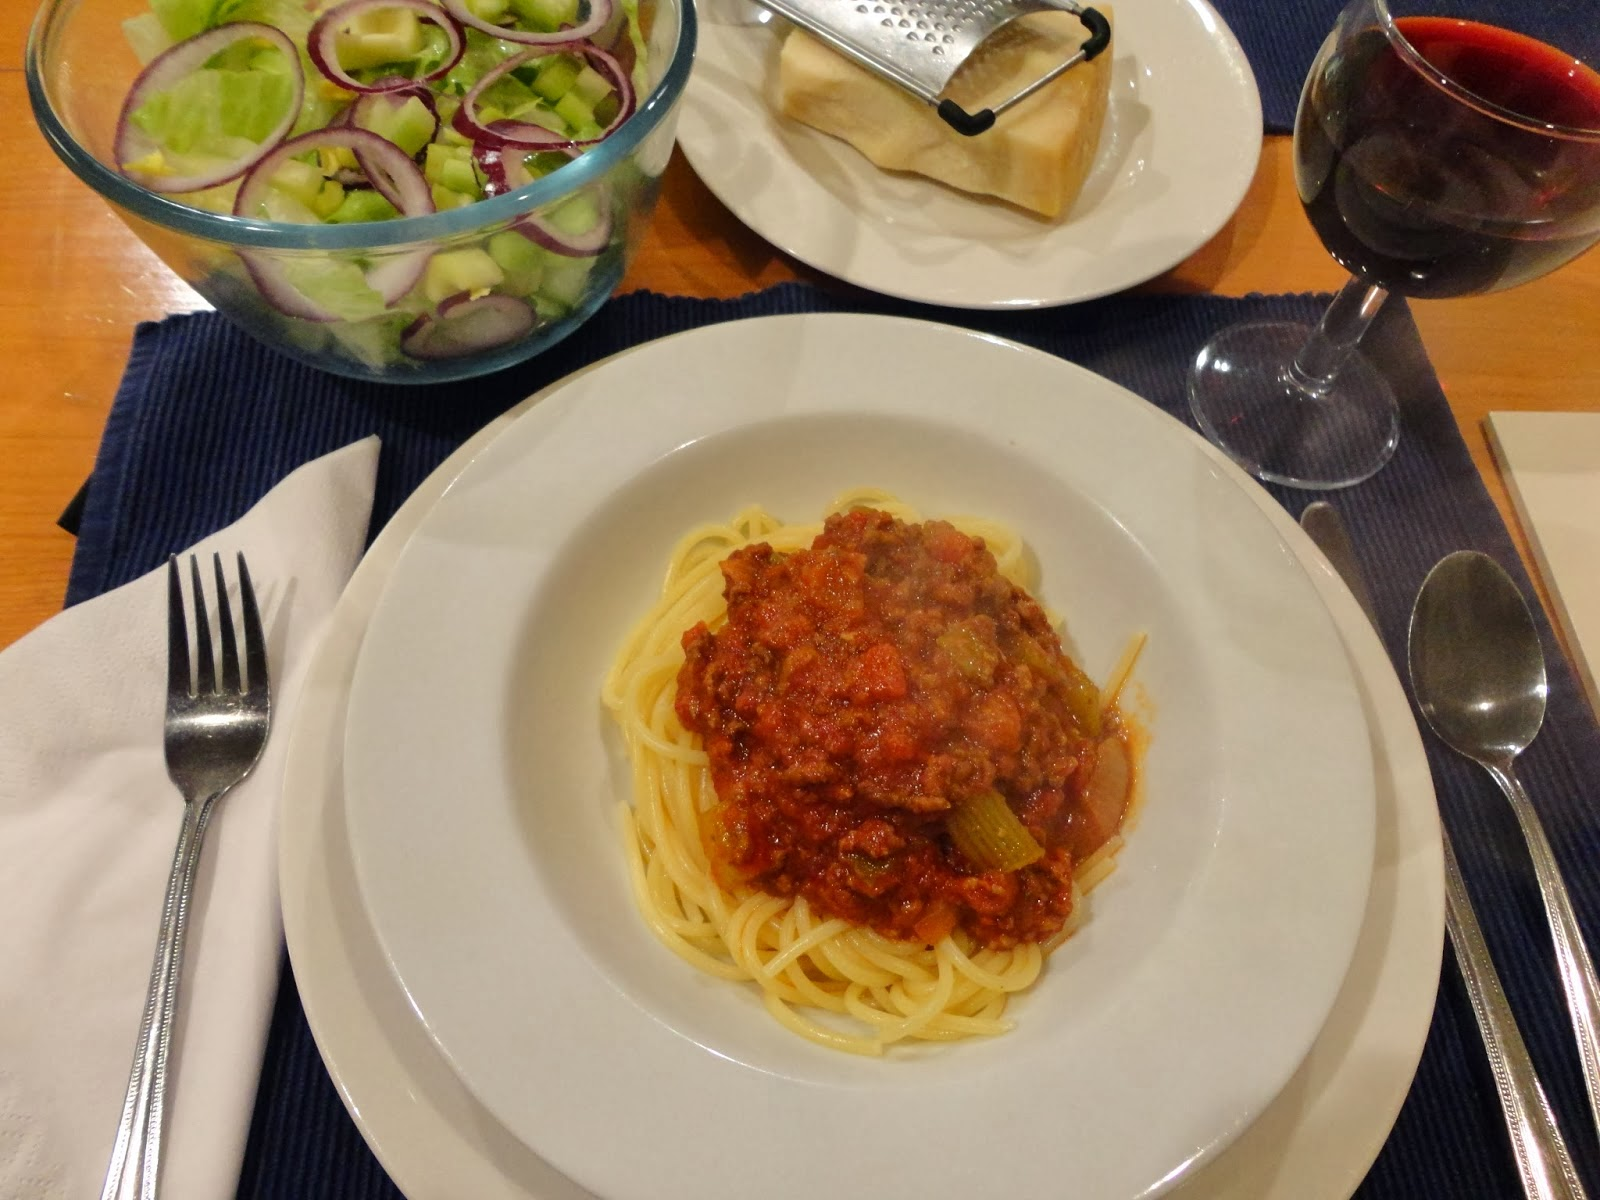 http://whoeverhasthemostfabric.blogspot.com/2014/01/a-family-favourite-spaghetti-bolognaise.html